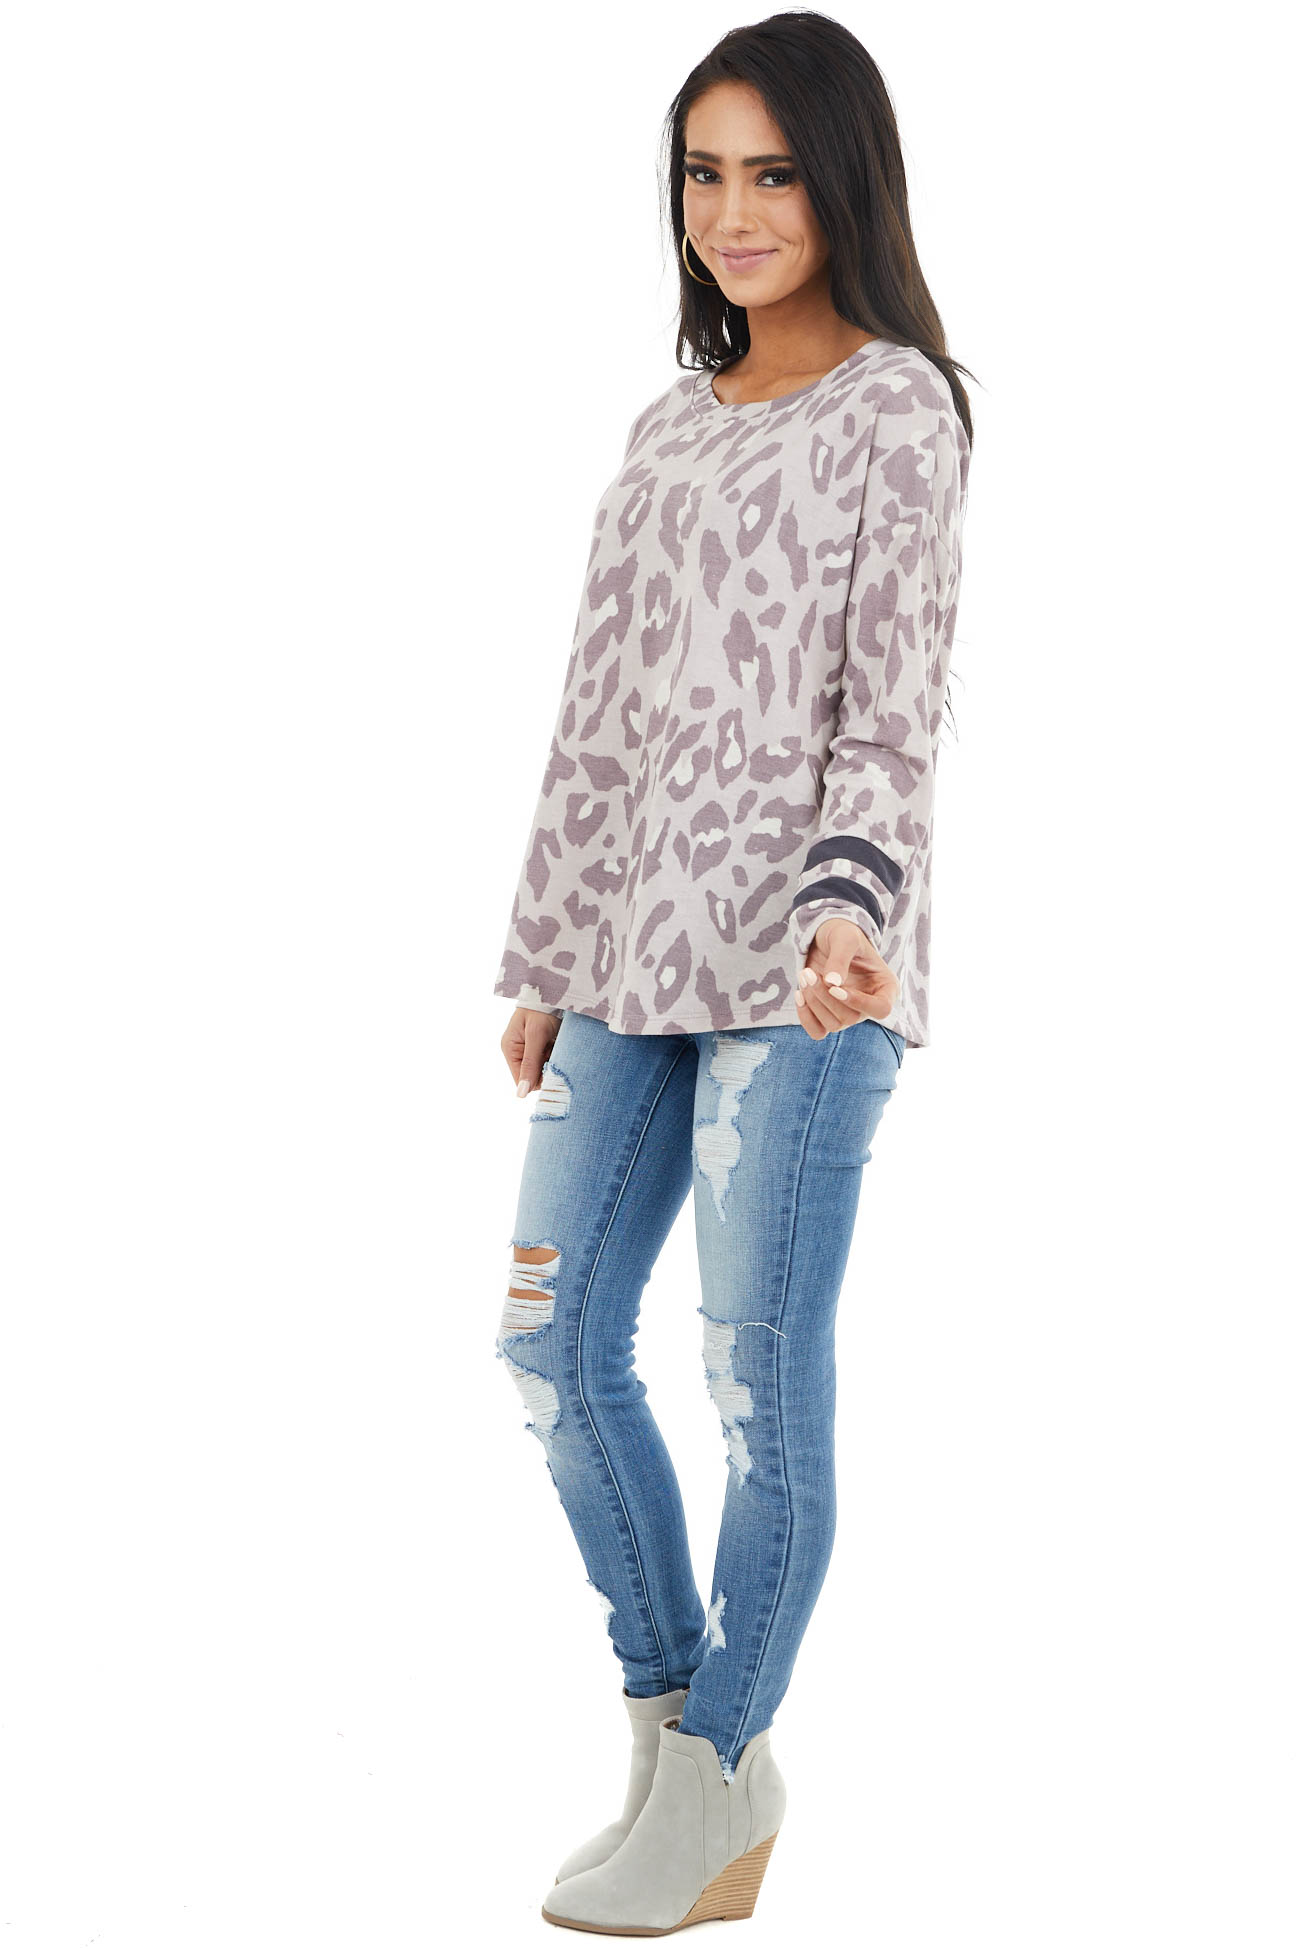 Lavender Leopard Print Stretchy Knit Top with Stripe Detail